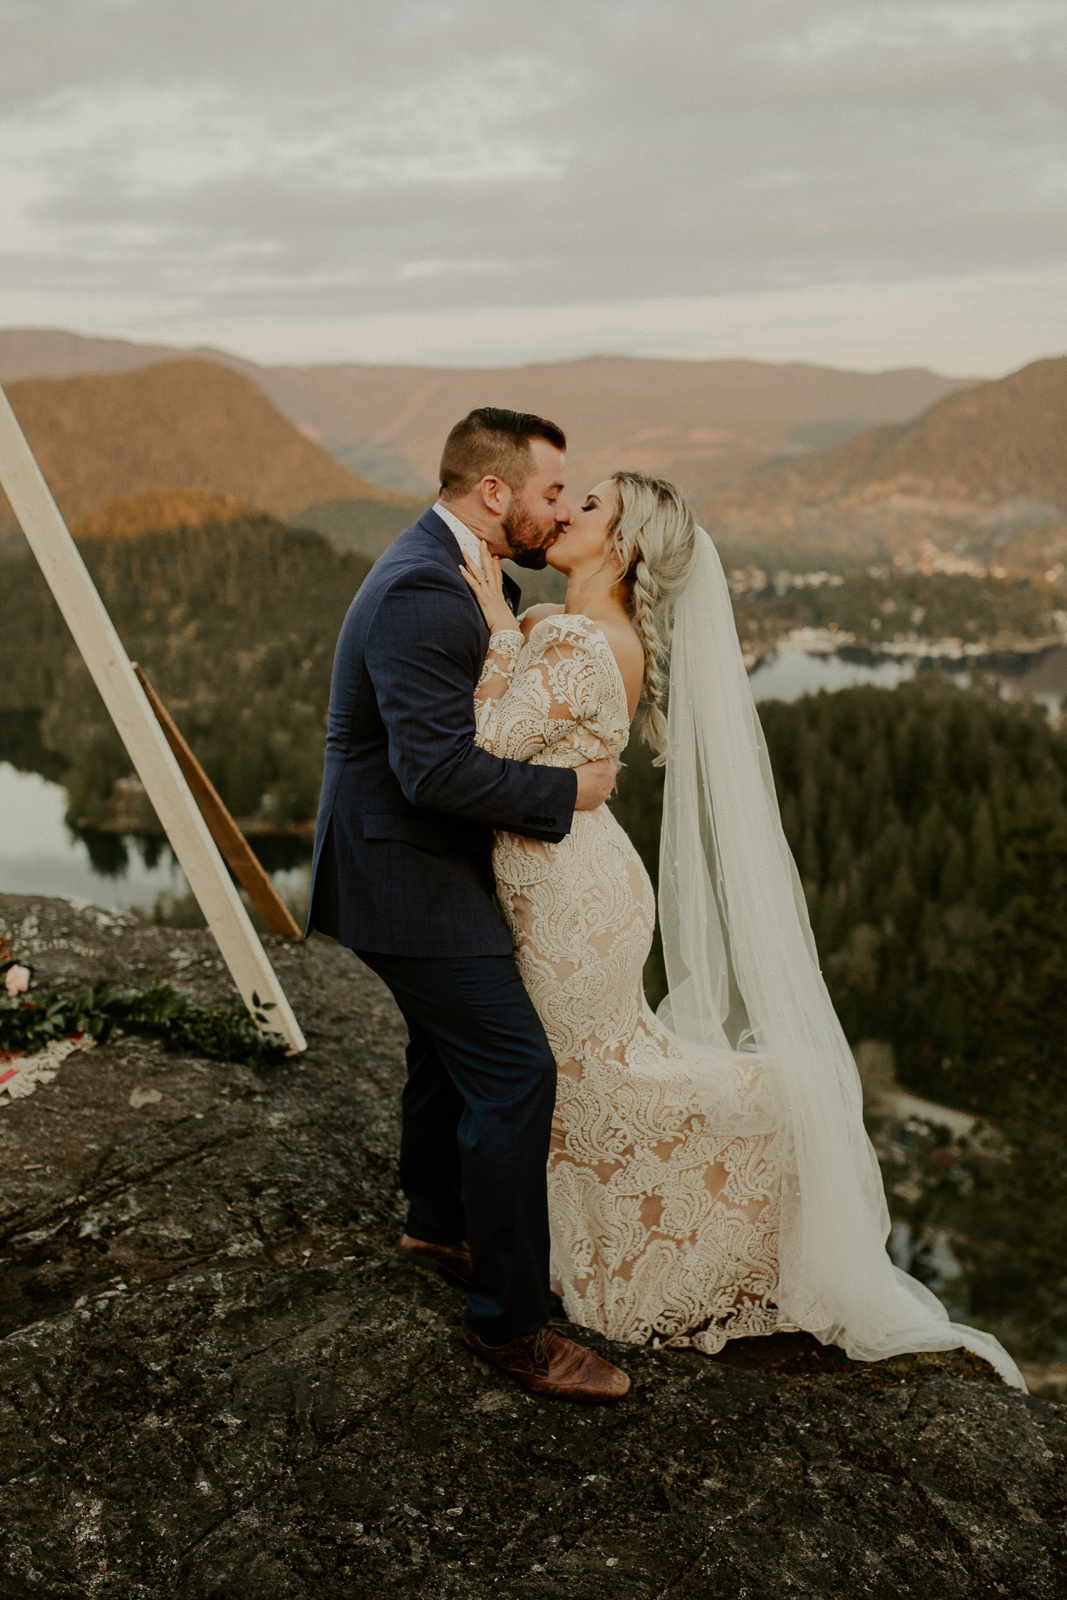 Luke Lambertson Photo_BritishColumbia_Canada_AdventurousCouple_Elopement_IMG-8495.jpg